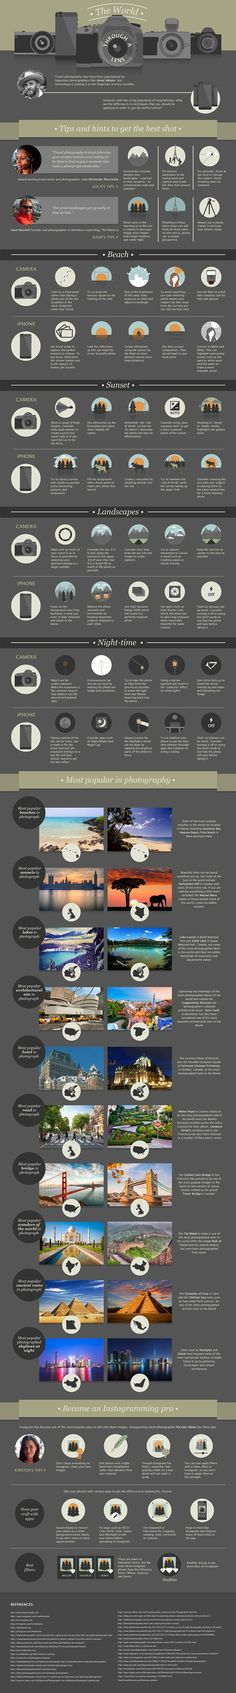 Fairmont Hotels' infographic guide to shooting holiday photos plus how to Instagram like a pro | Daily Mail Online (scheduled via http://www.tailwindapp.com?utm_source=pinterest&utm_medium=twpin)